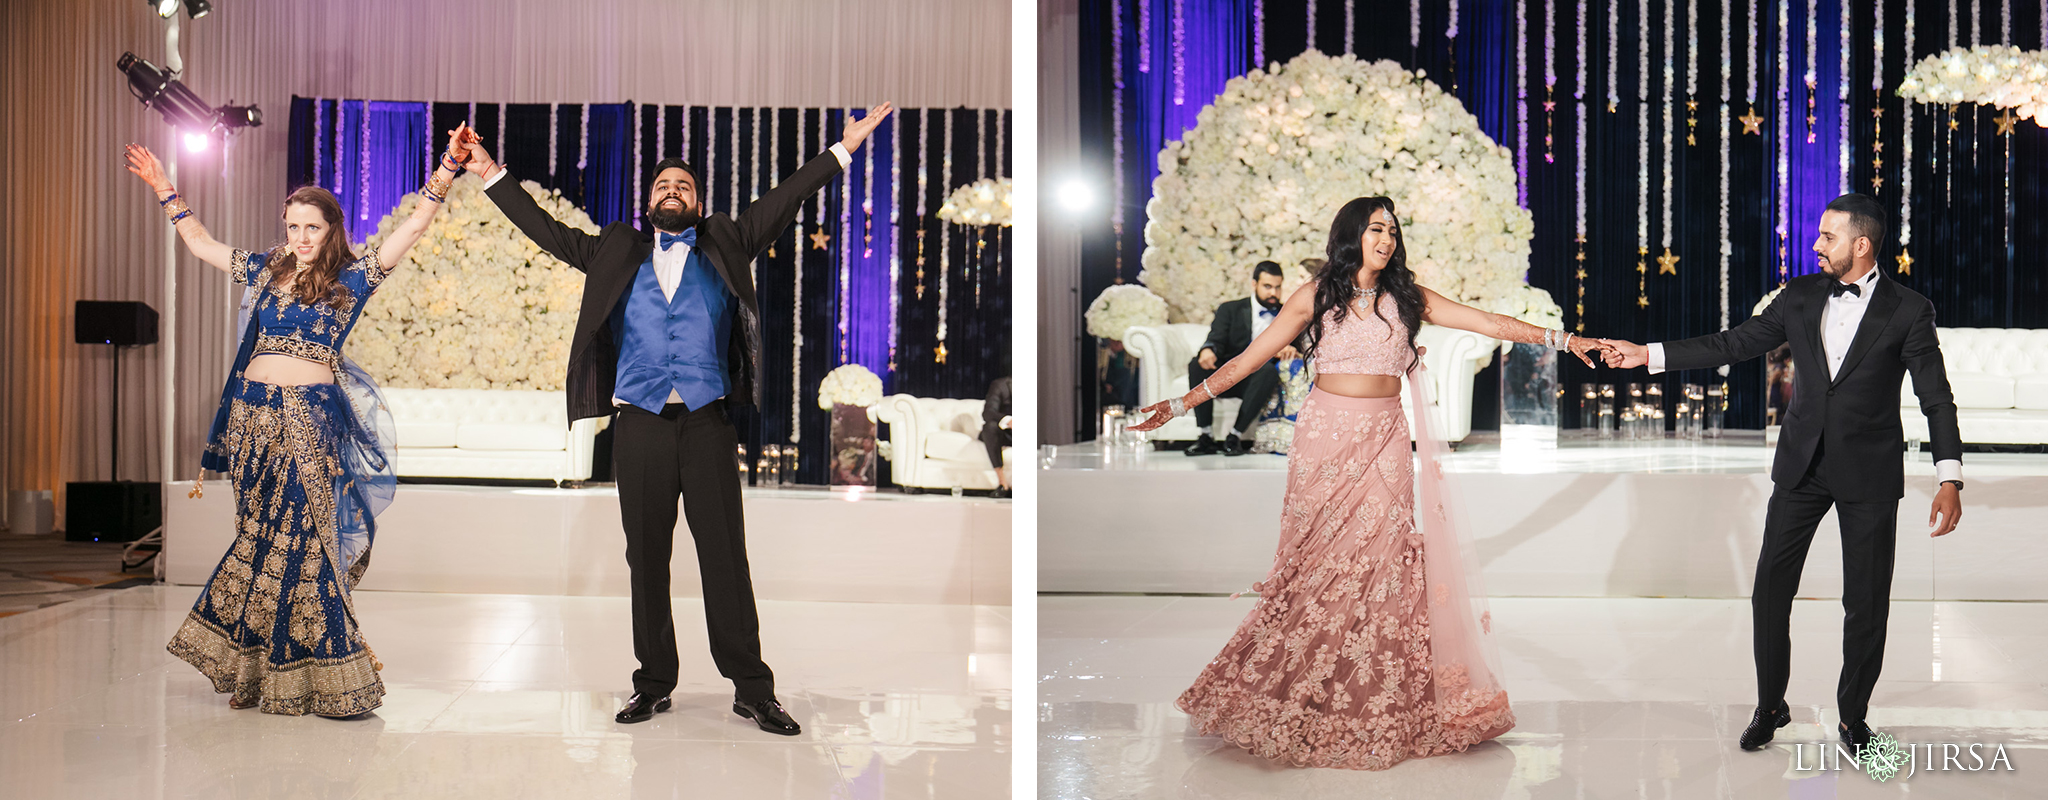 17 Hotel Irvine Joint Indian Reception Wedding Photography